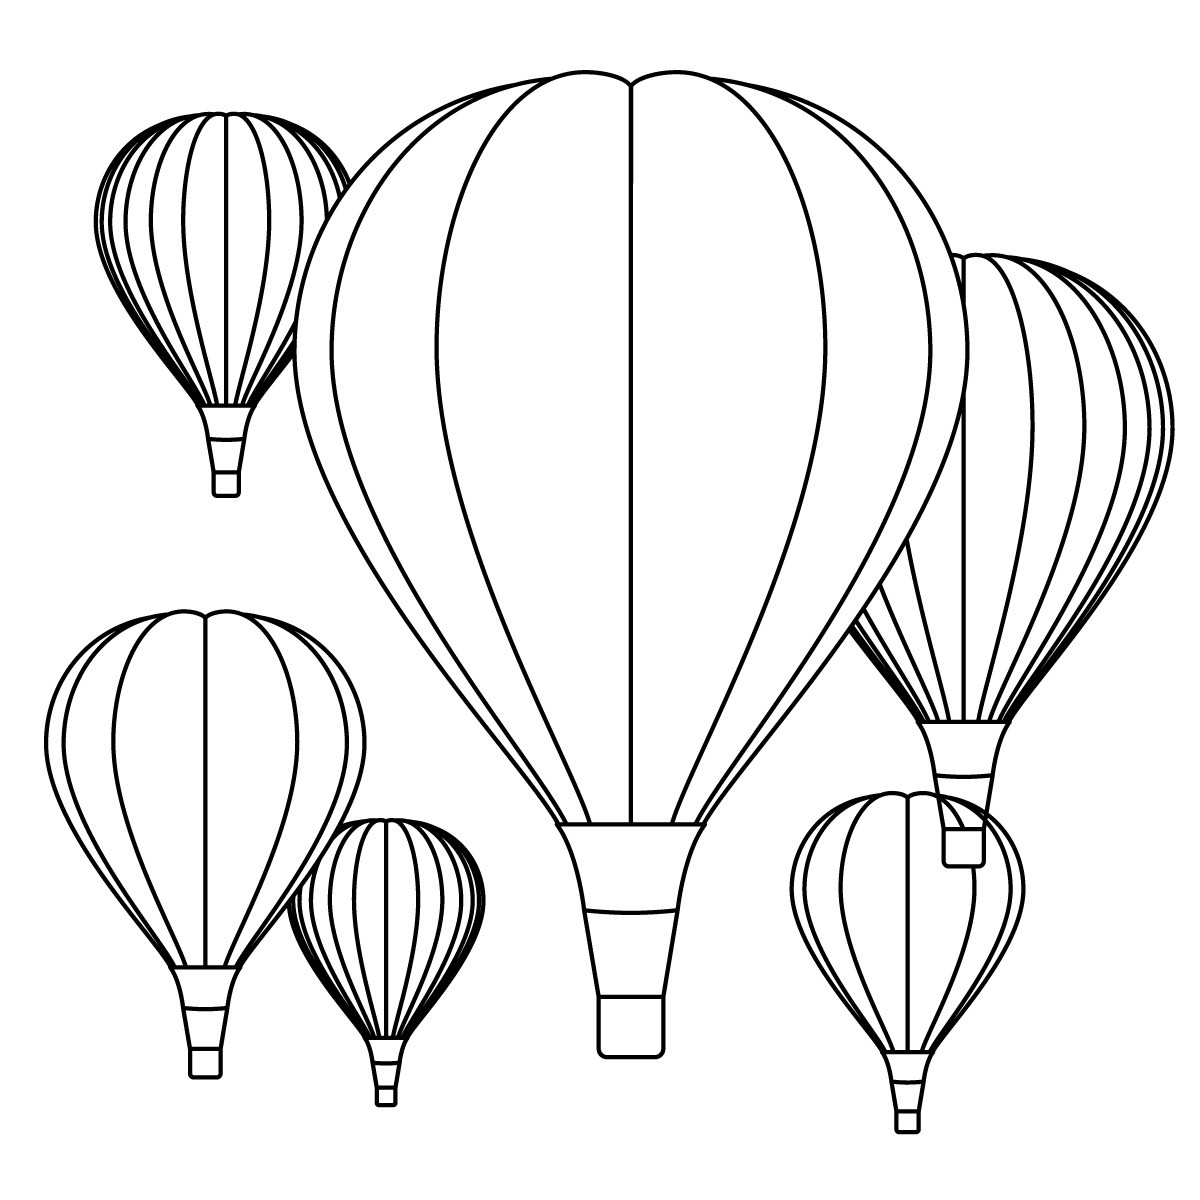 air coloring pages for kids - photo#20